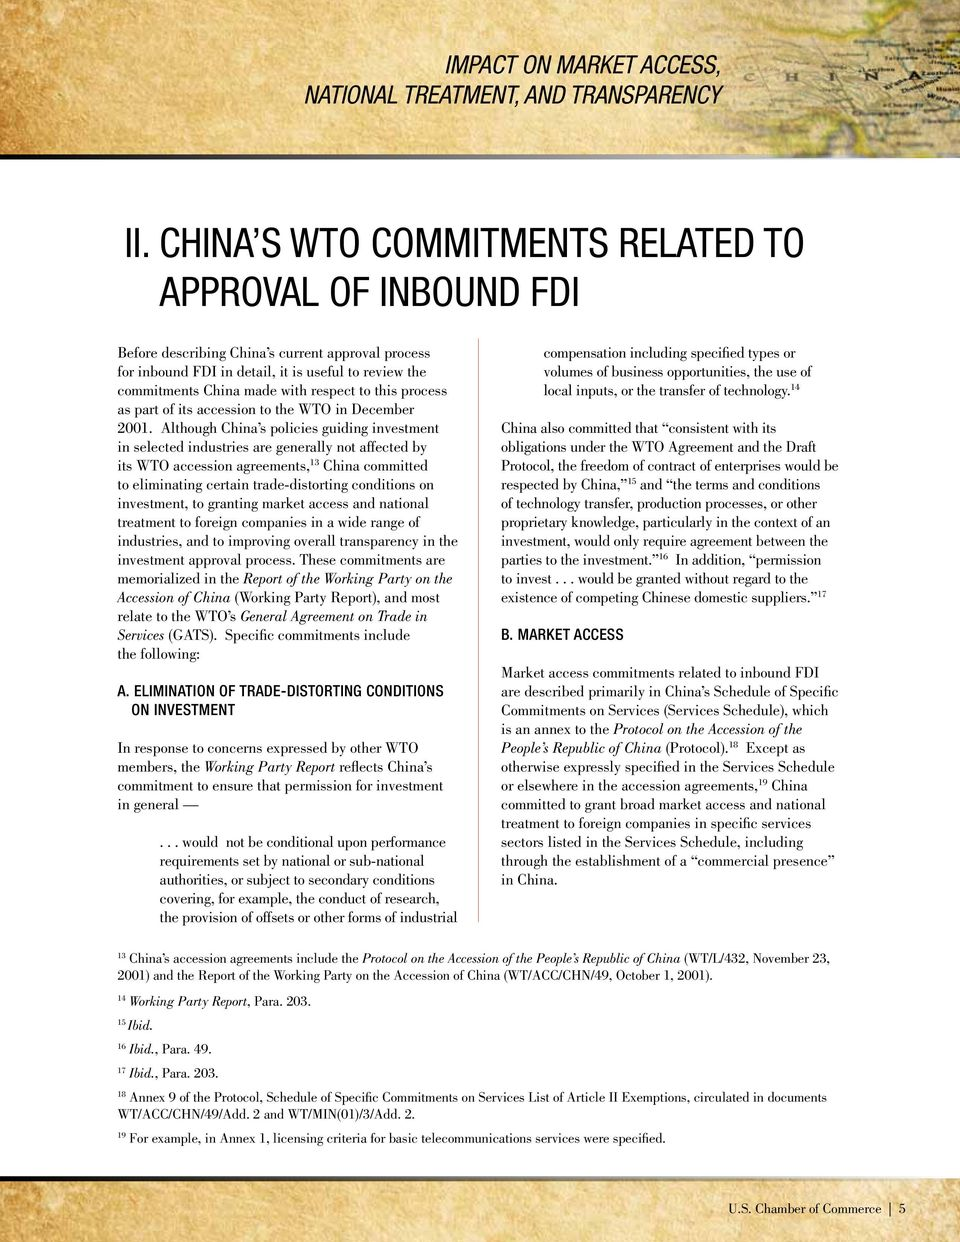 to this process as part of its accession to the WTO in December 2001.